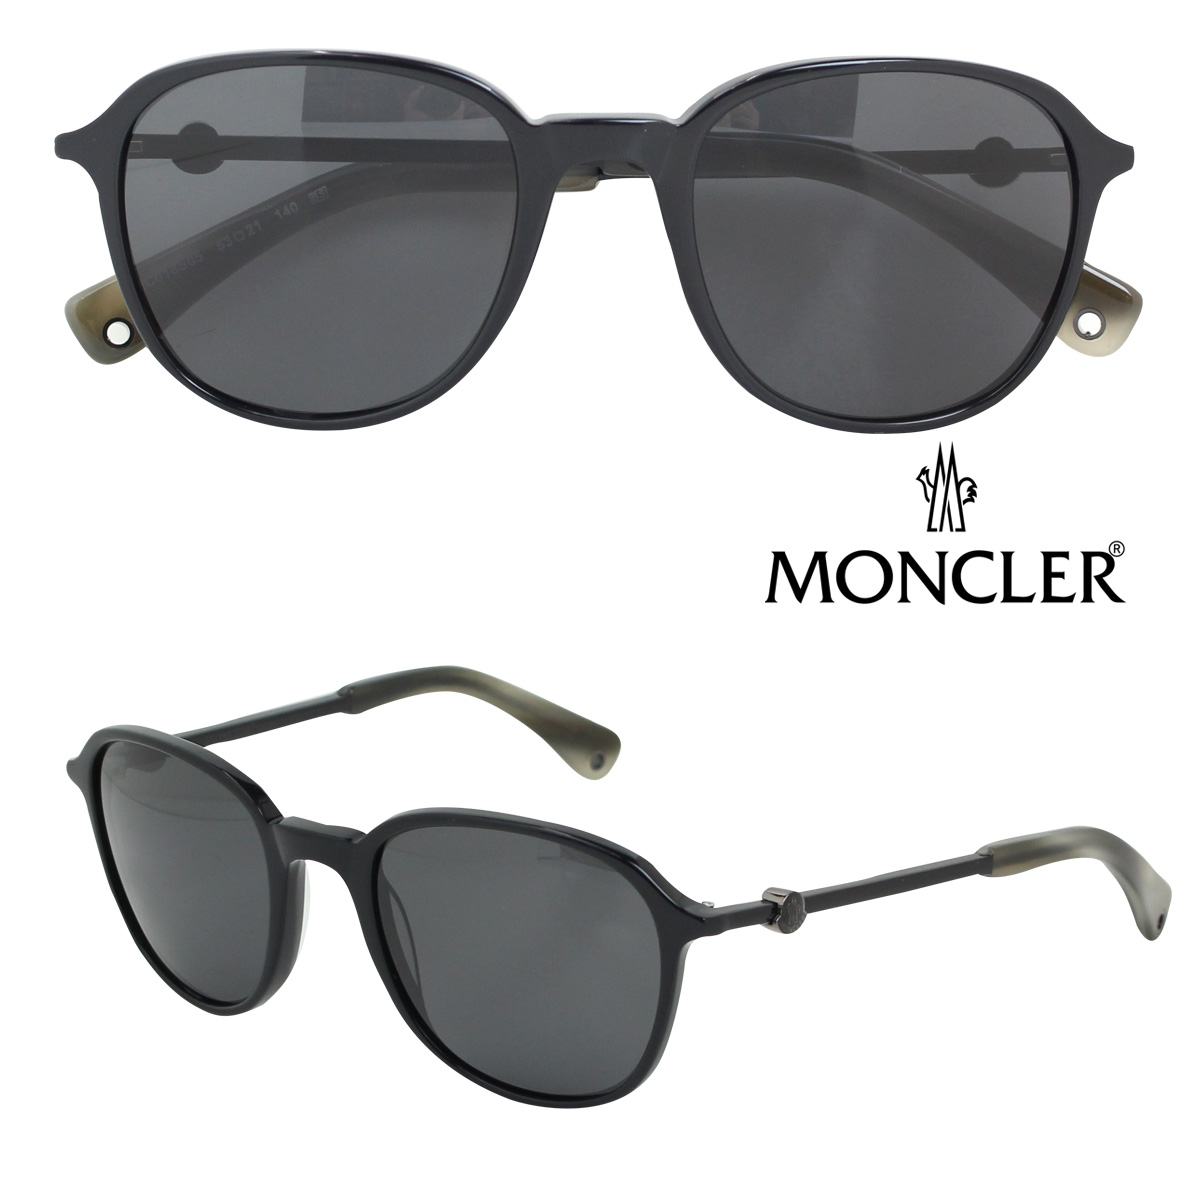 Sugar Online Shop | Rakuten Global Market: MONCLER MONCLER Sunglasses made in Italy men's ladies